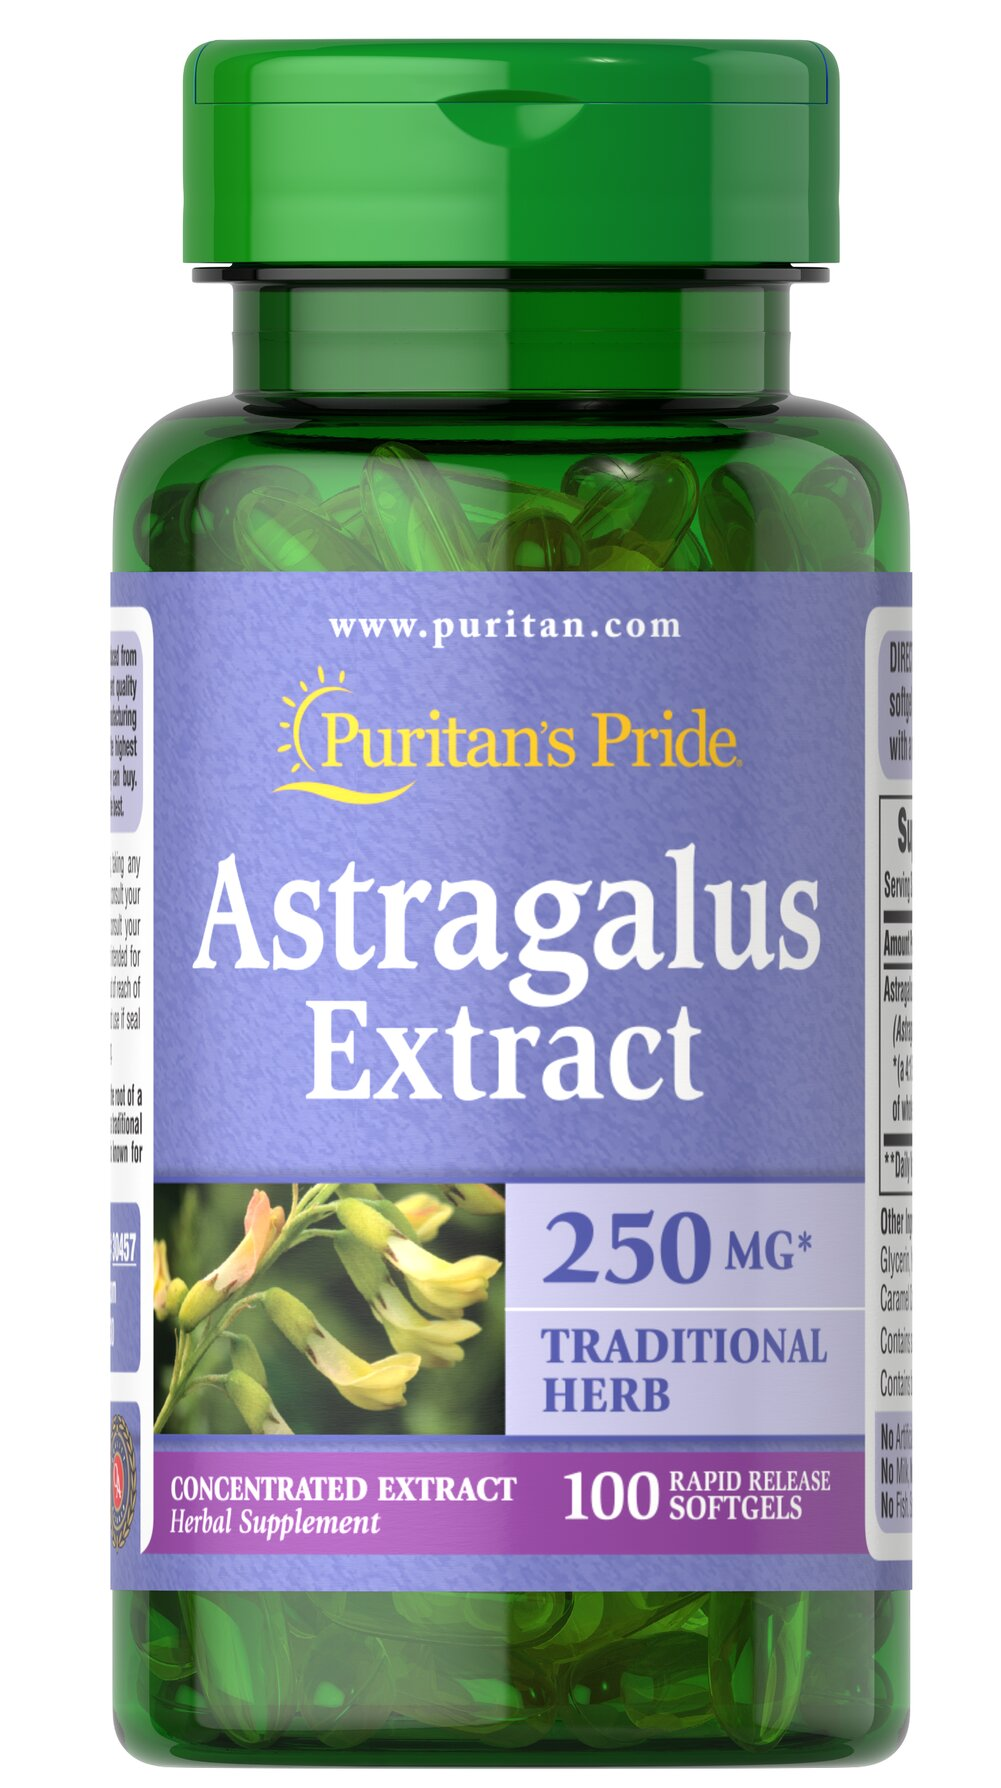 Astragalus Extract 1000 mg* <p>Traditional Chinese Herb </p><p>Astragalus contains naturally occurring flavonoids and polysaccharides. As a traditional Chinese herb, Astragalus is known for its goodness.</p> 100 Softgels 1000 mg $14.99